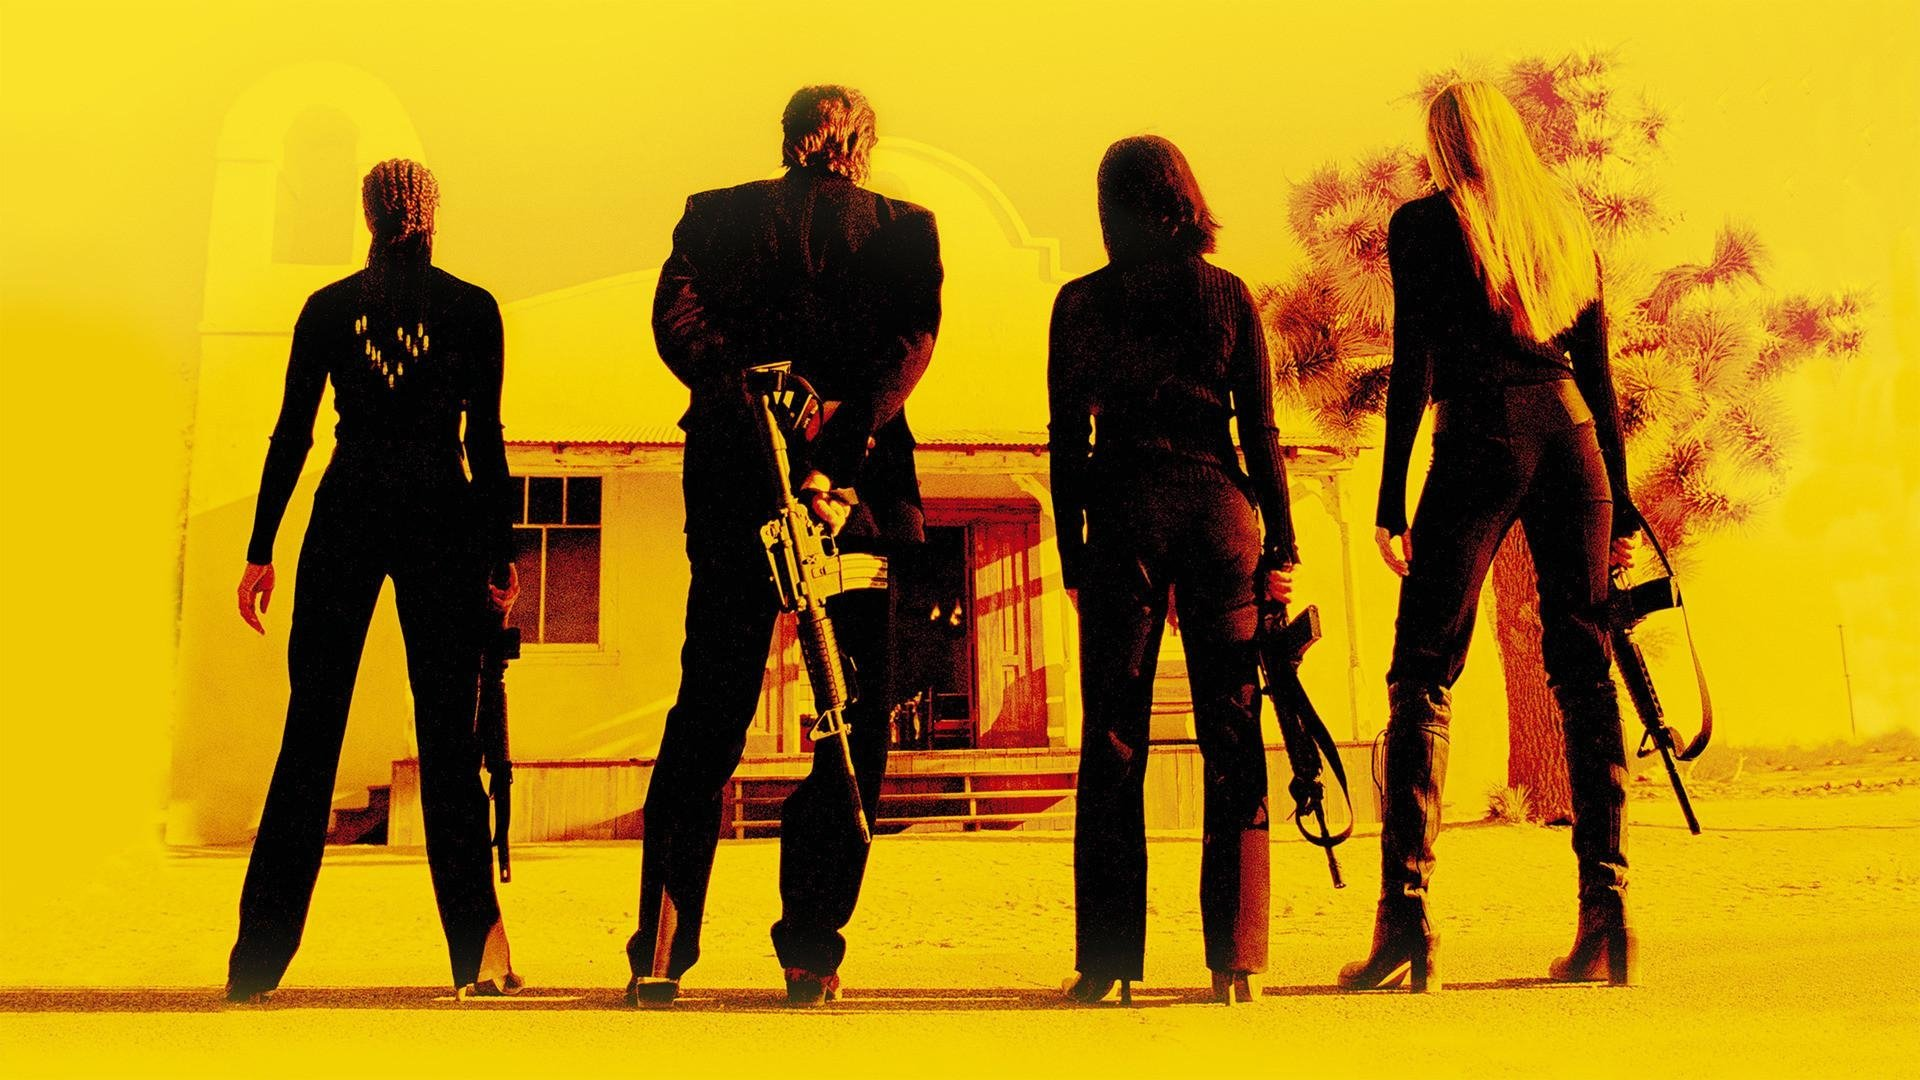 download movie killbill wallpaper - photo #12